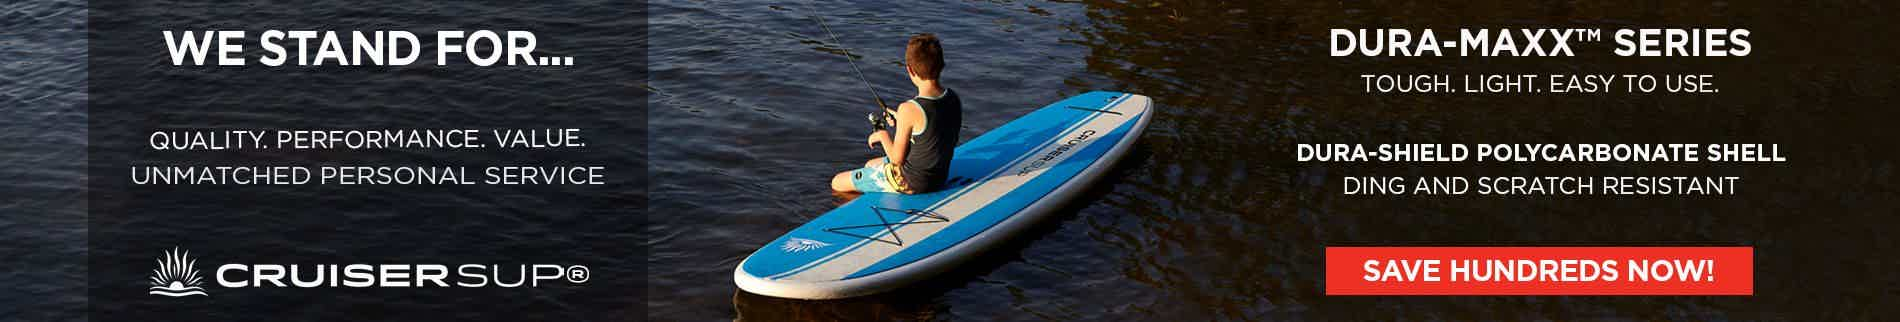 A child fishing on a SUP board